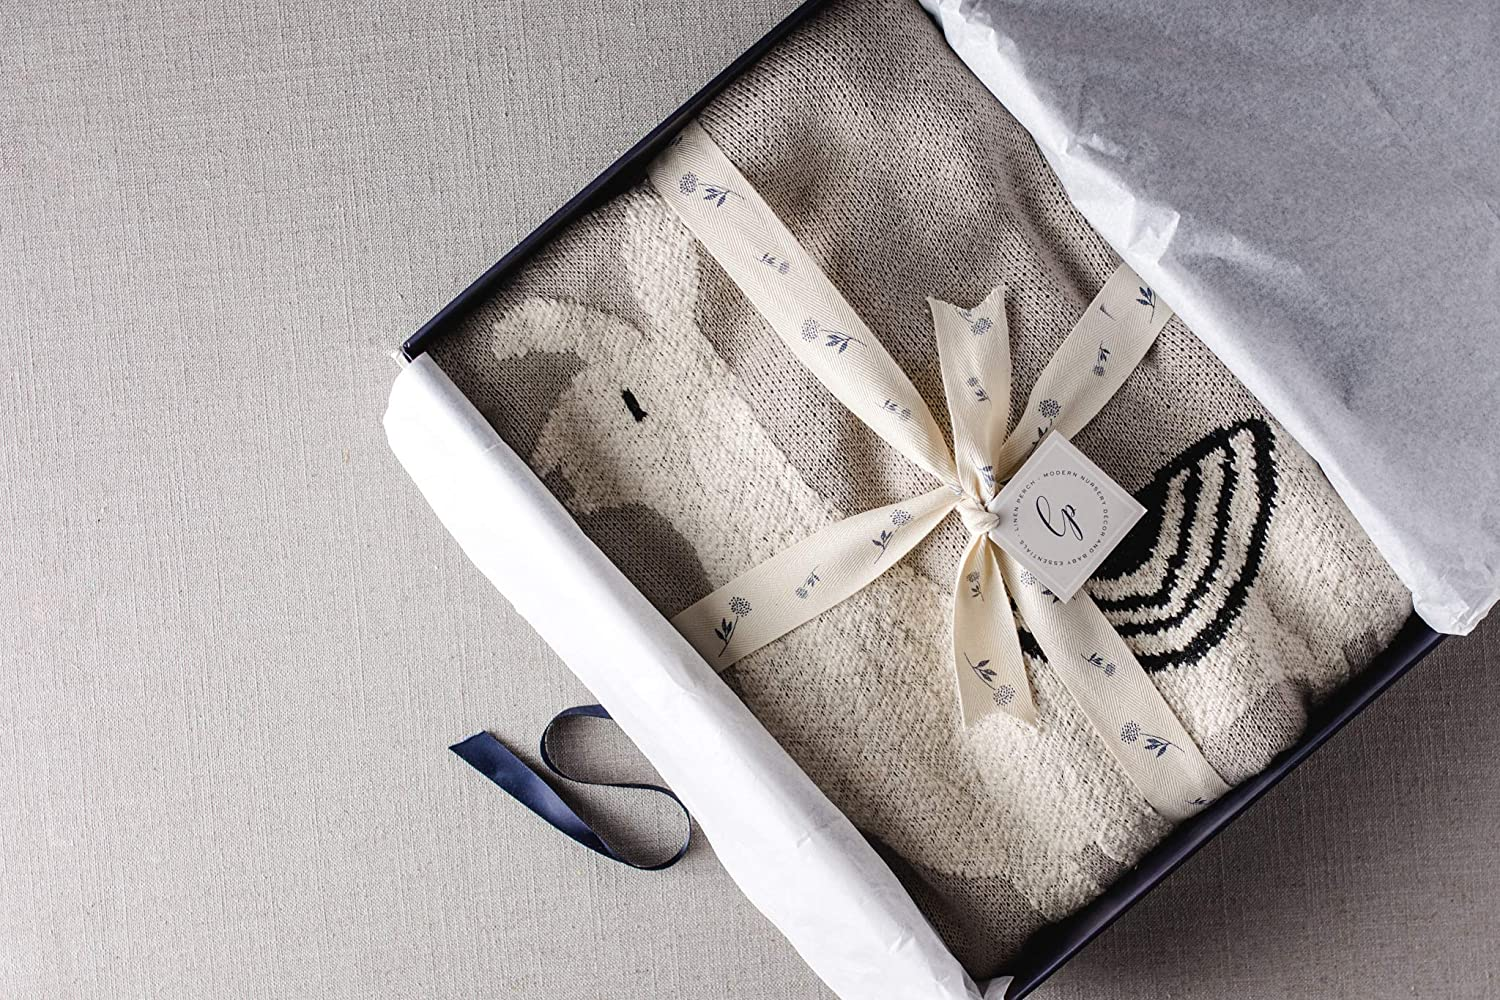 Newborn Baby Shower Gift for Boy or Girl in Deluxe Gift Box Luxury Llama Baby Blanket 100/% Cotton Warm Baby or Toddler Blanket